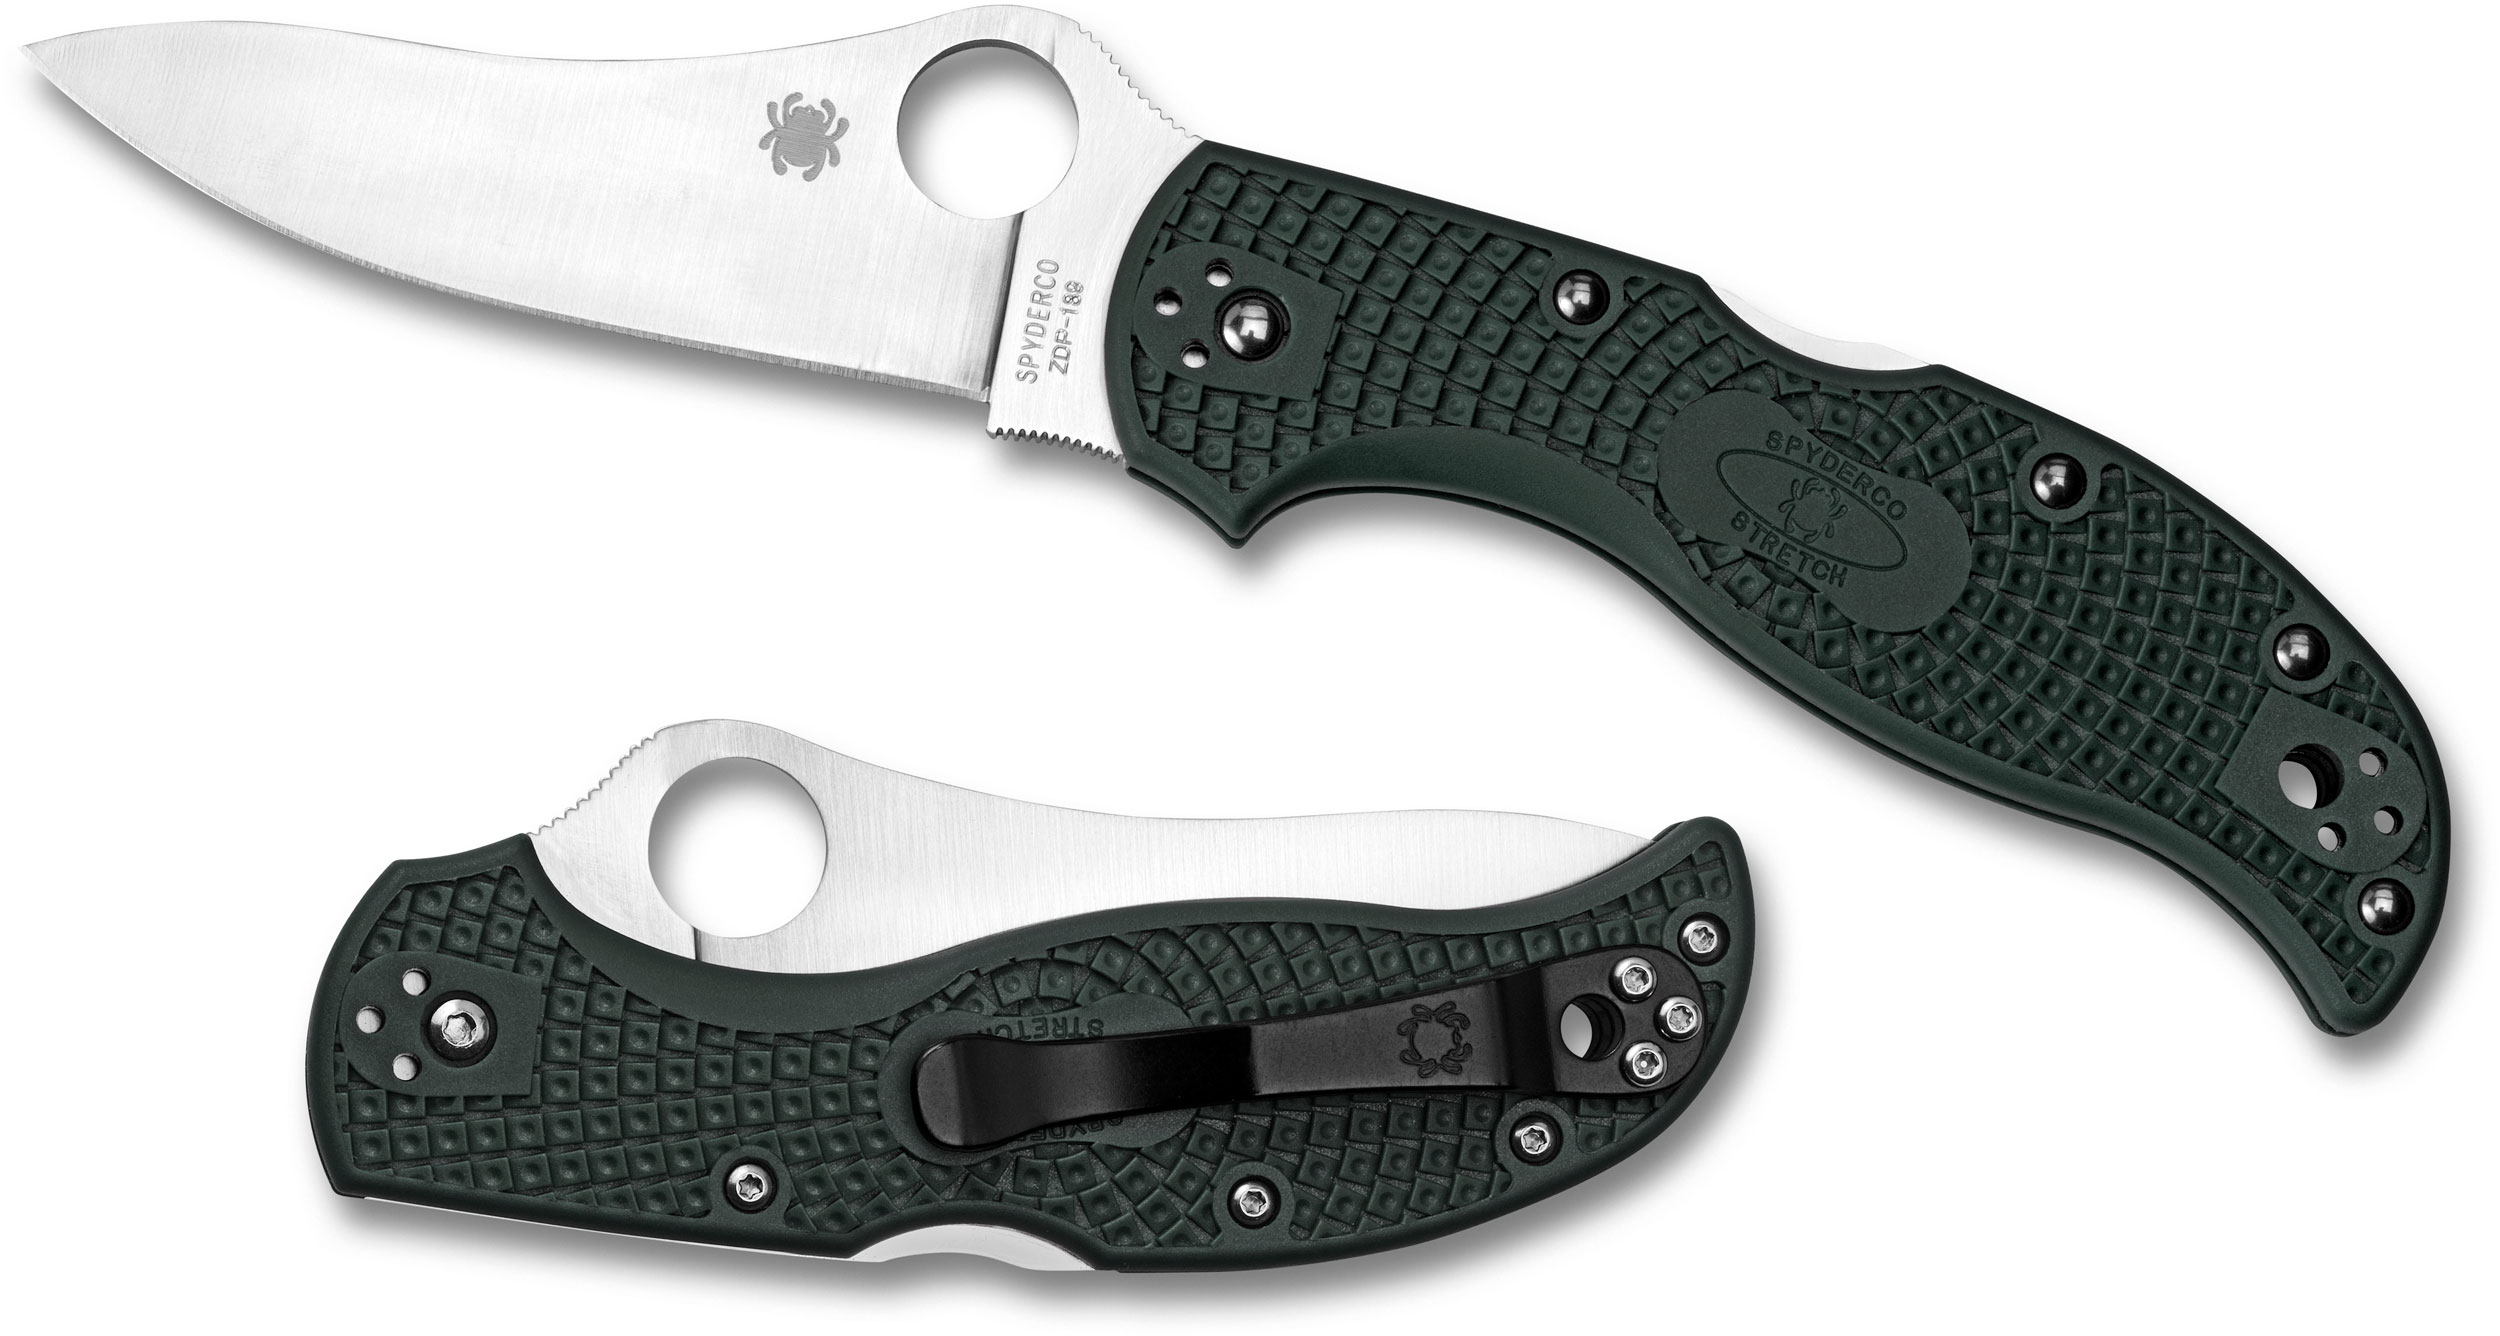 Buy Spyderco Stretch at KnifeCenter